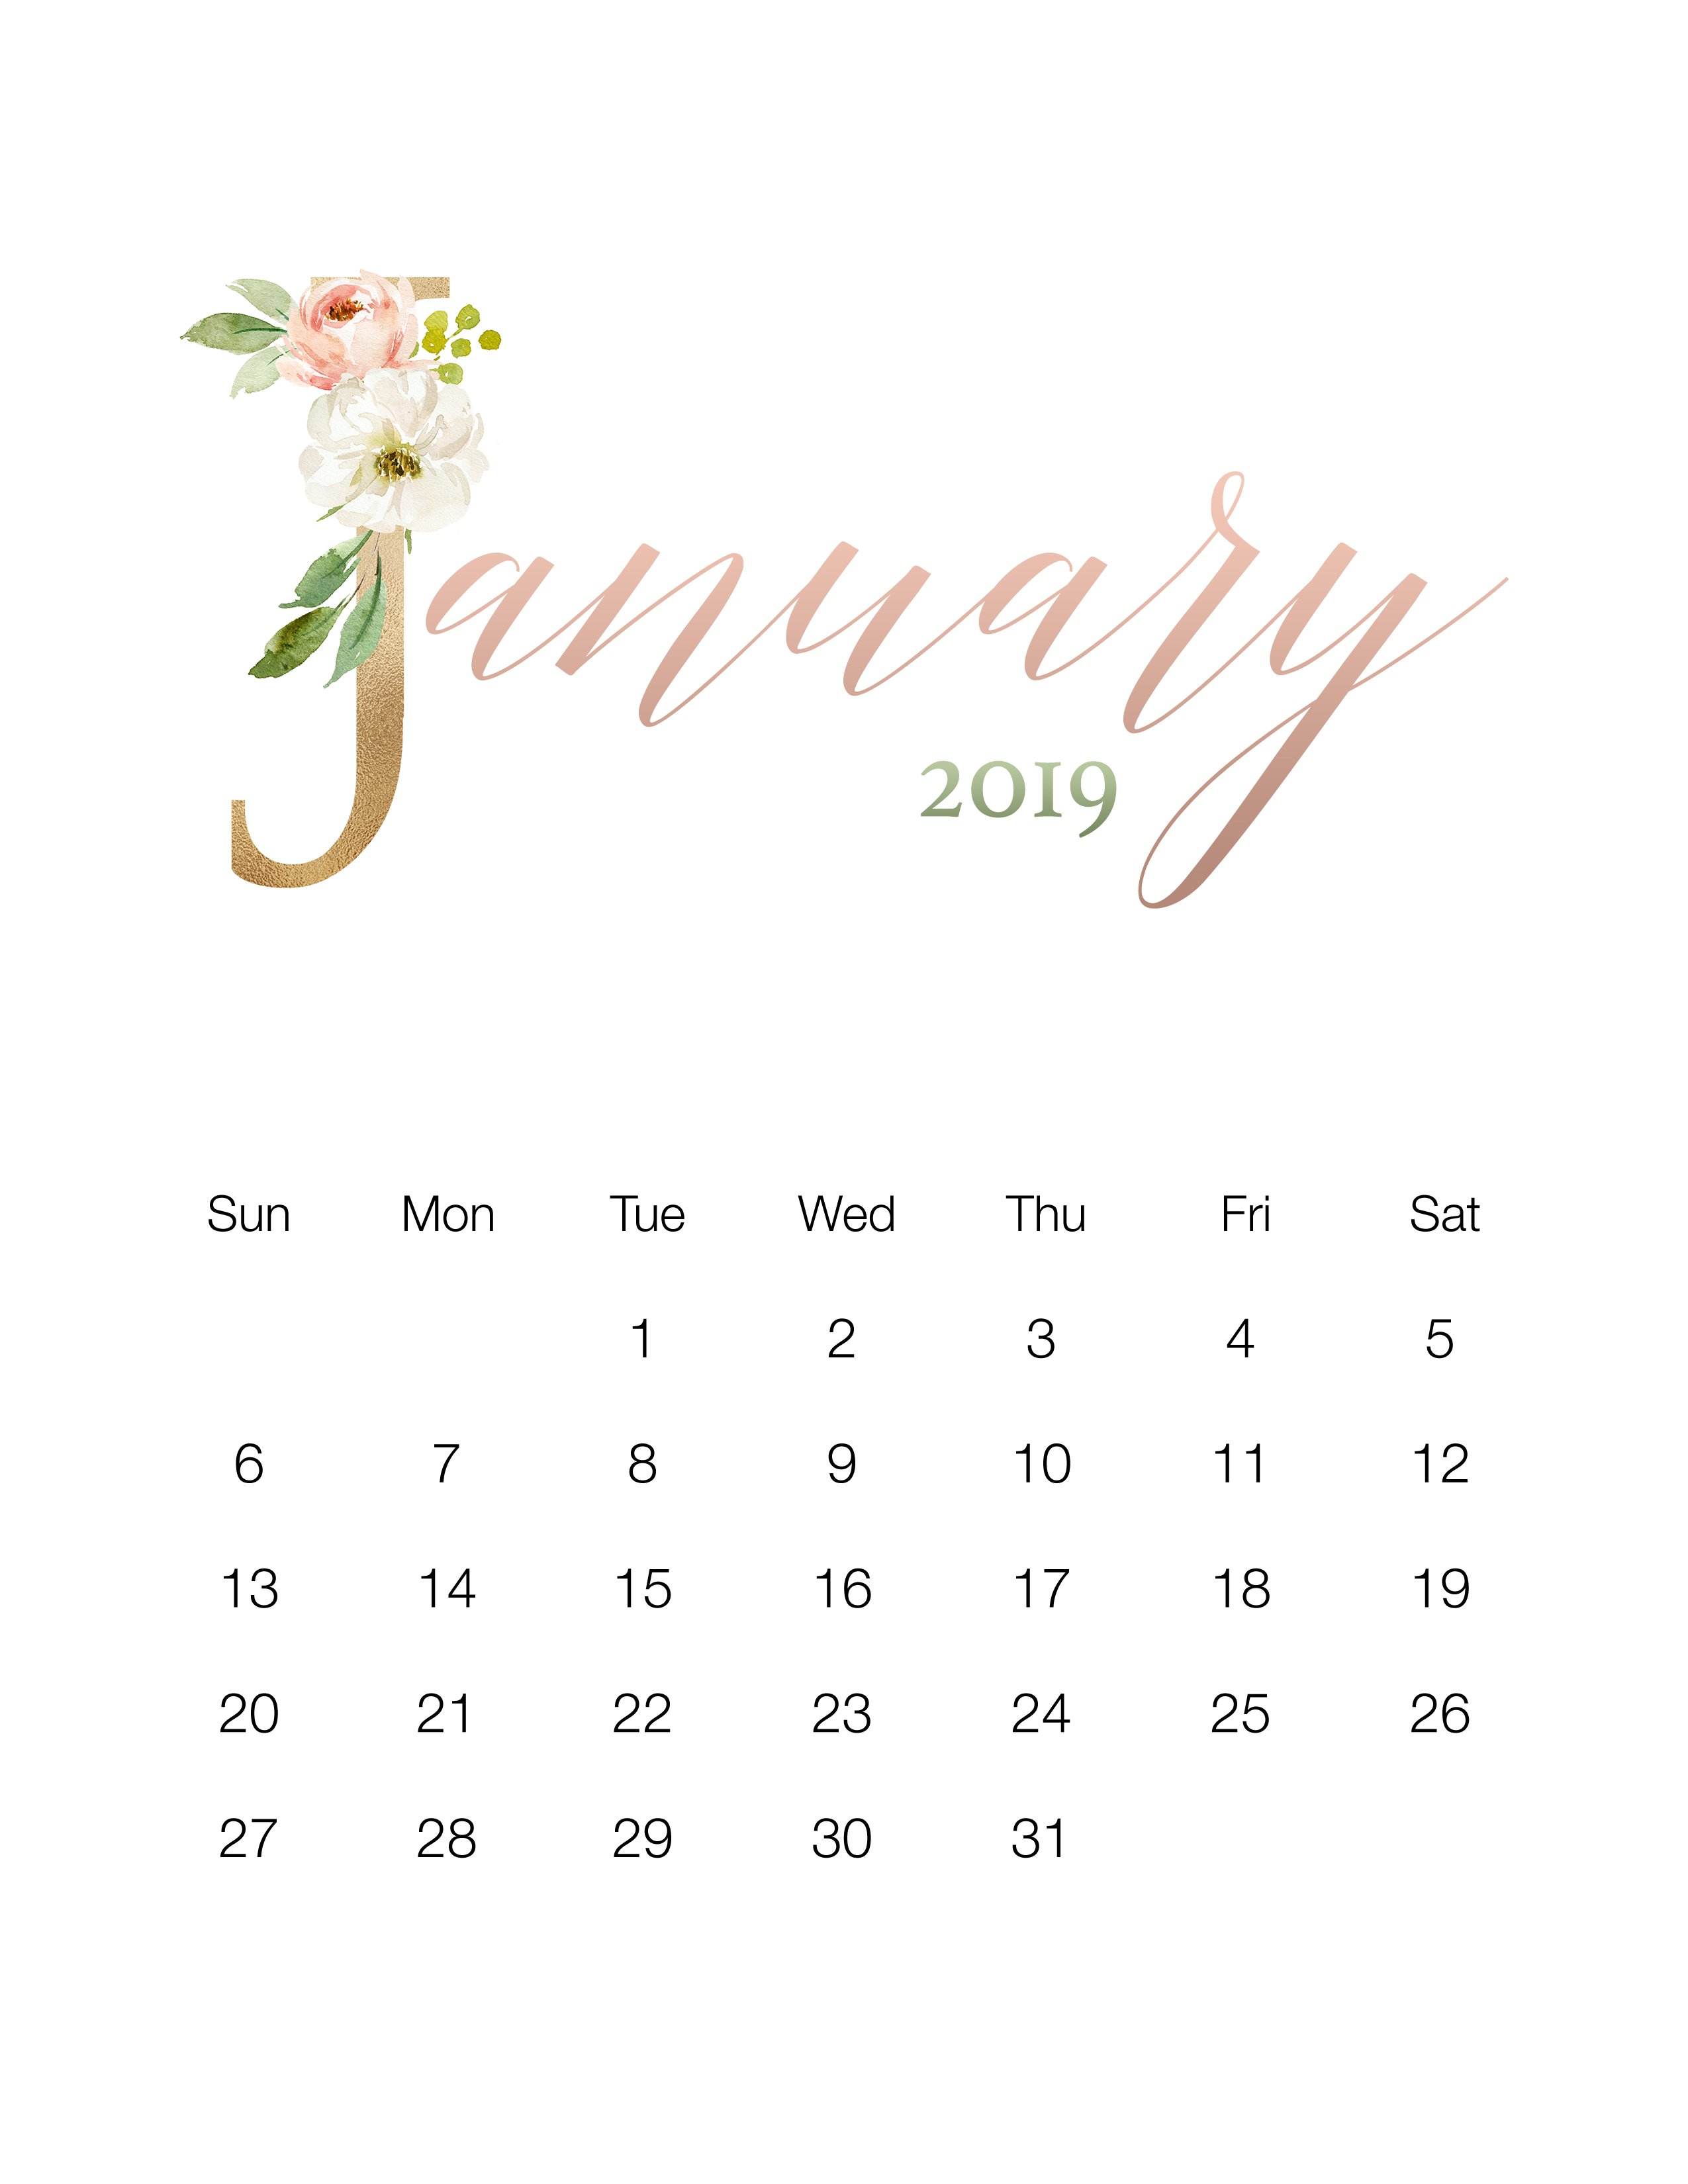 Pretty Floral Free Printable 2019 Calendar - The Cottage Market Calendar 2019 Pretty